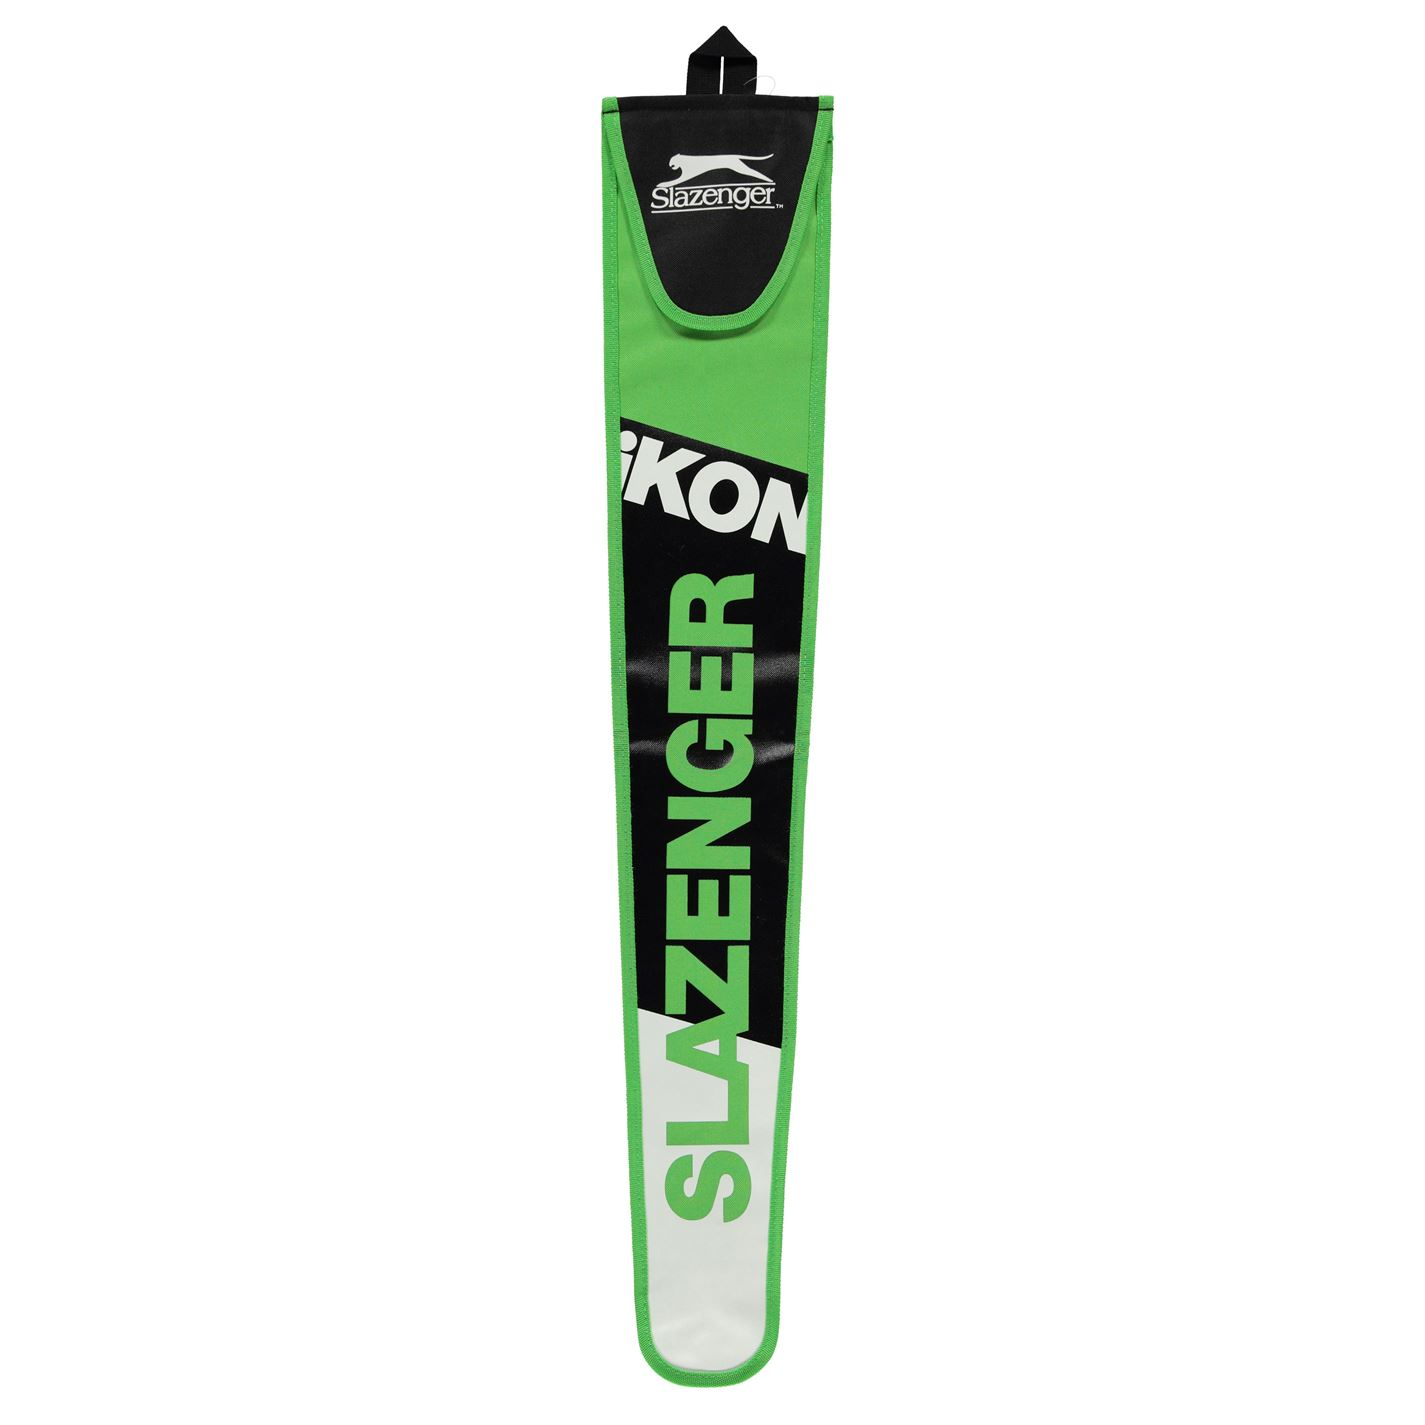 Slazenger Ikon Stick Bag Black/Green